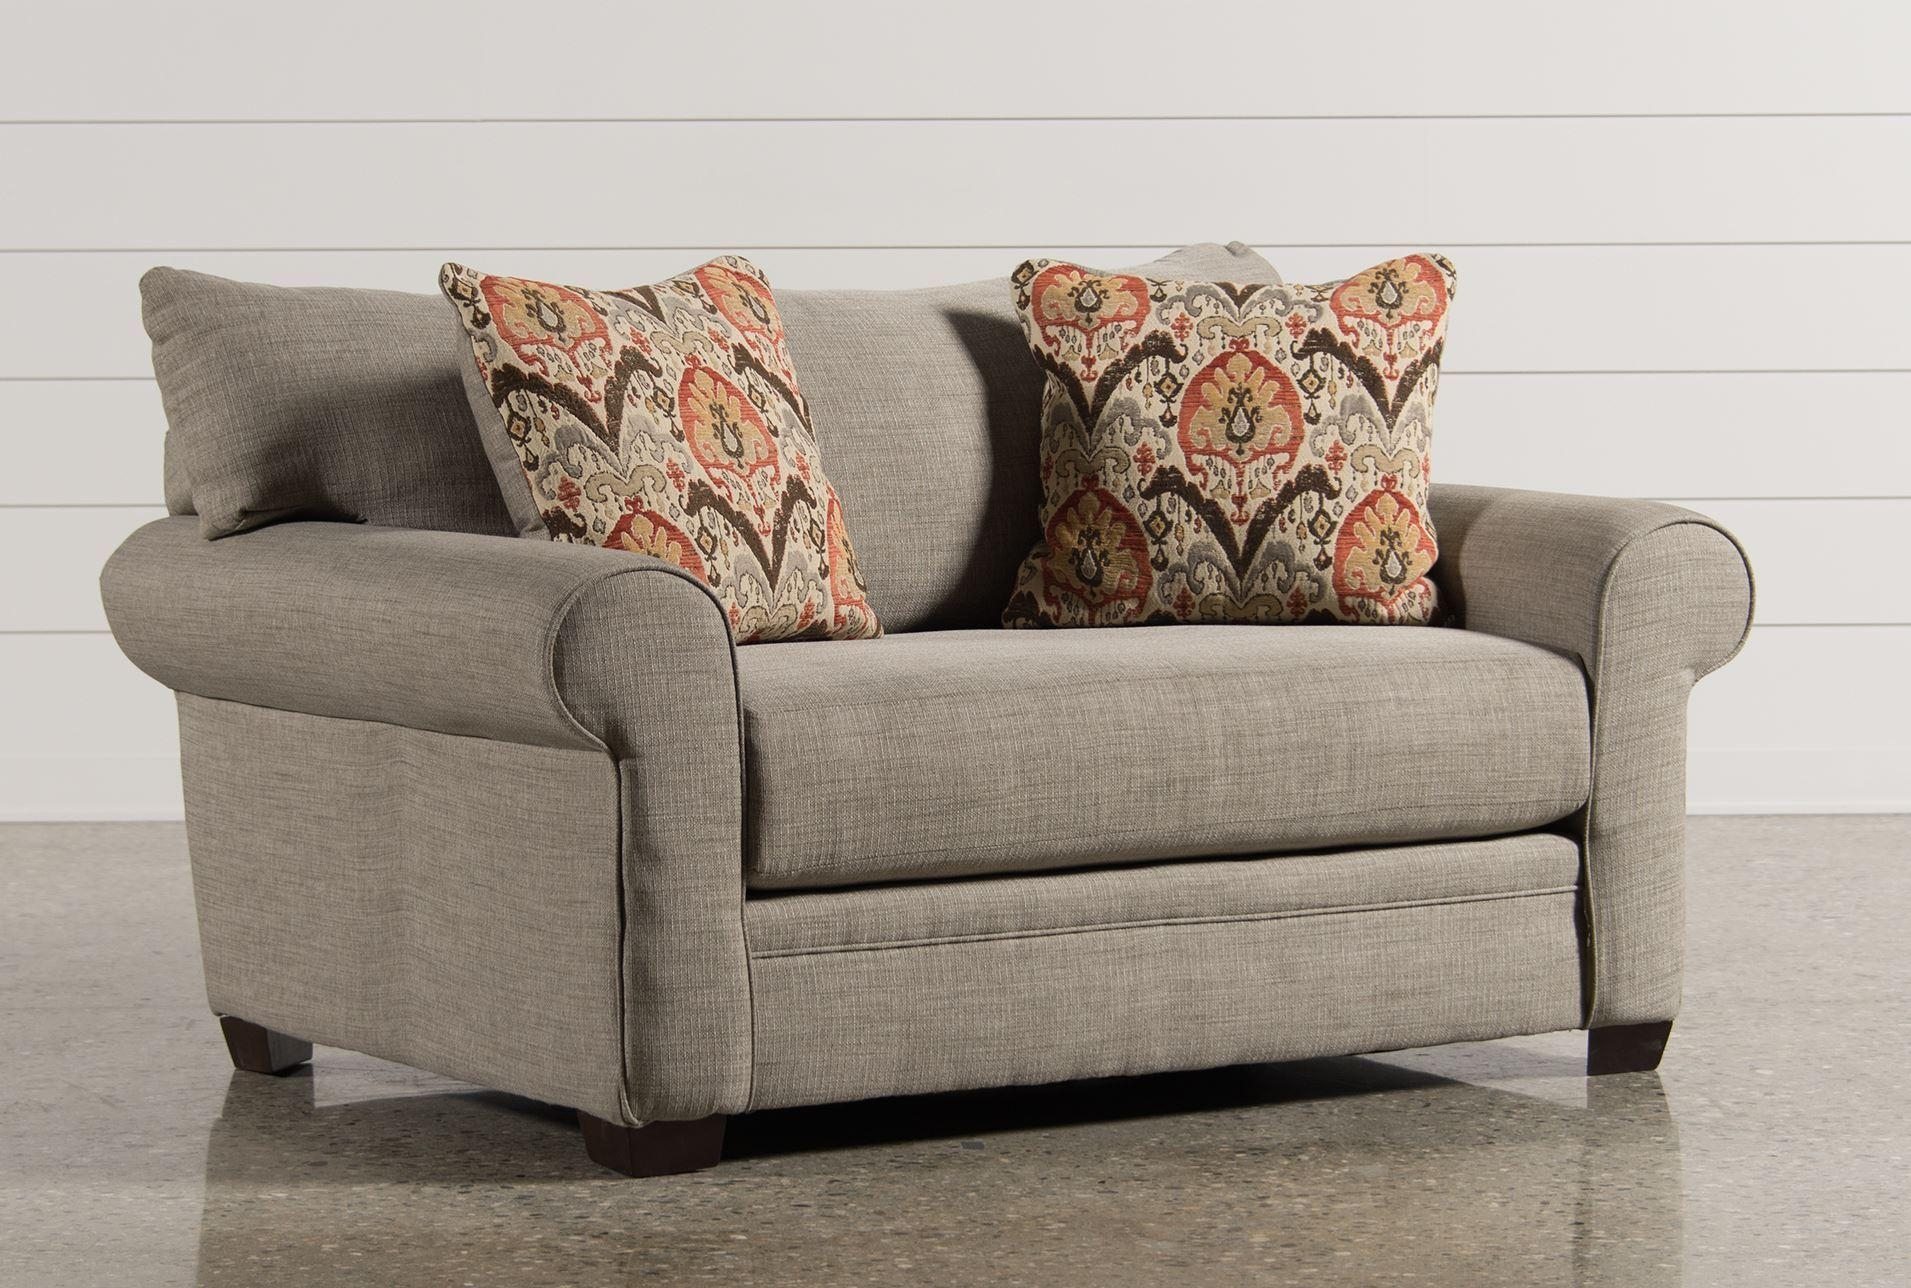 Sofa Chairs For Living Room | Tehranmix Decoration Within Sofa Chairs For Living Room (Image 18 of 20)